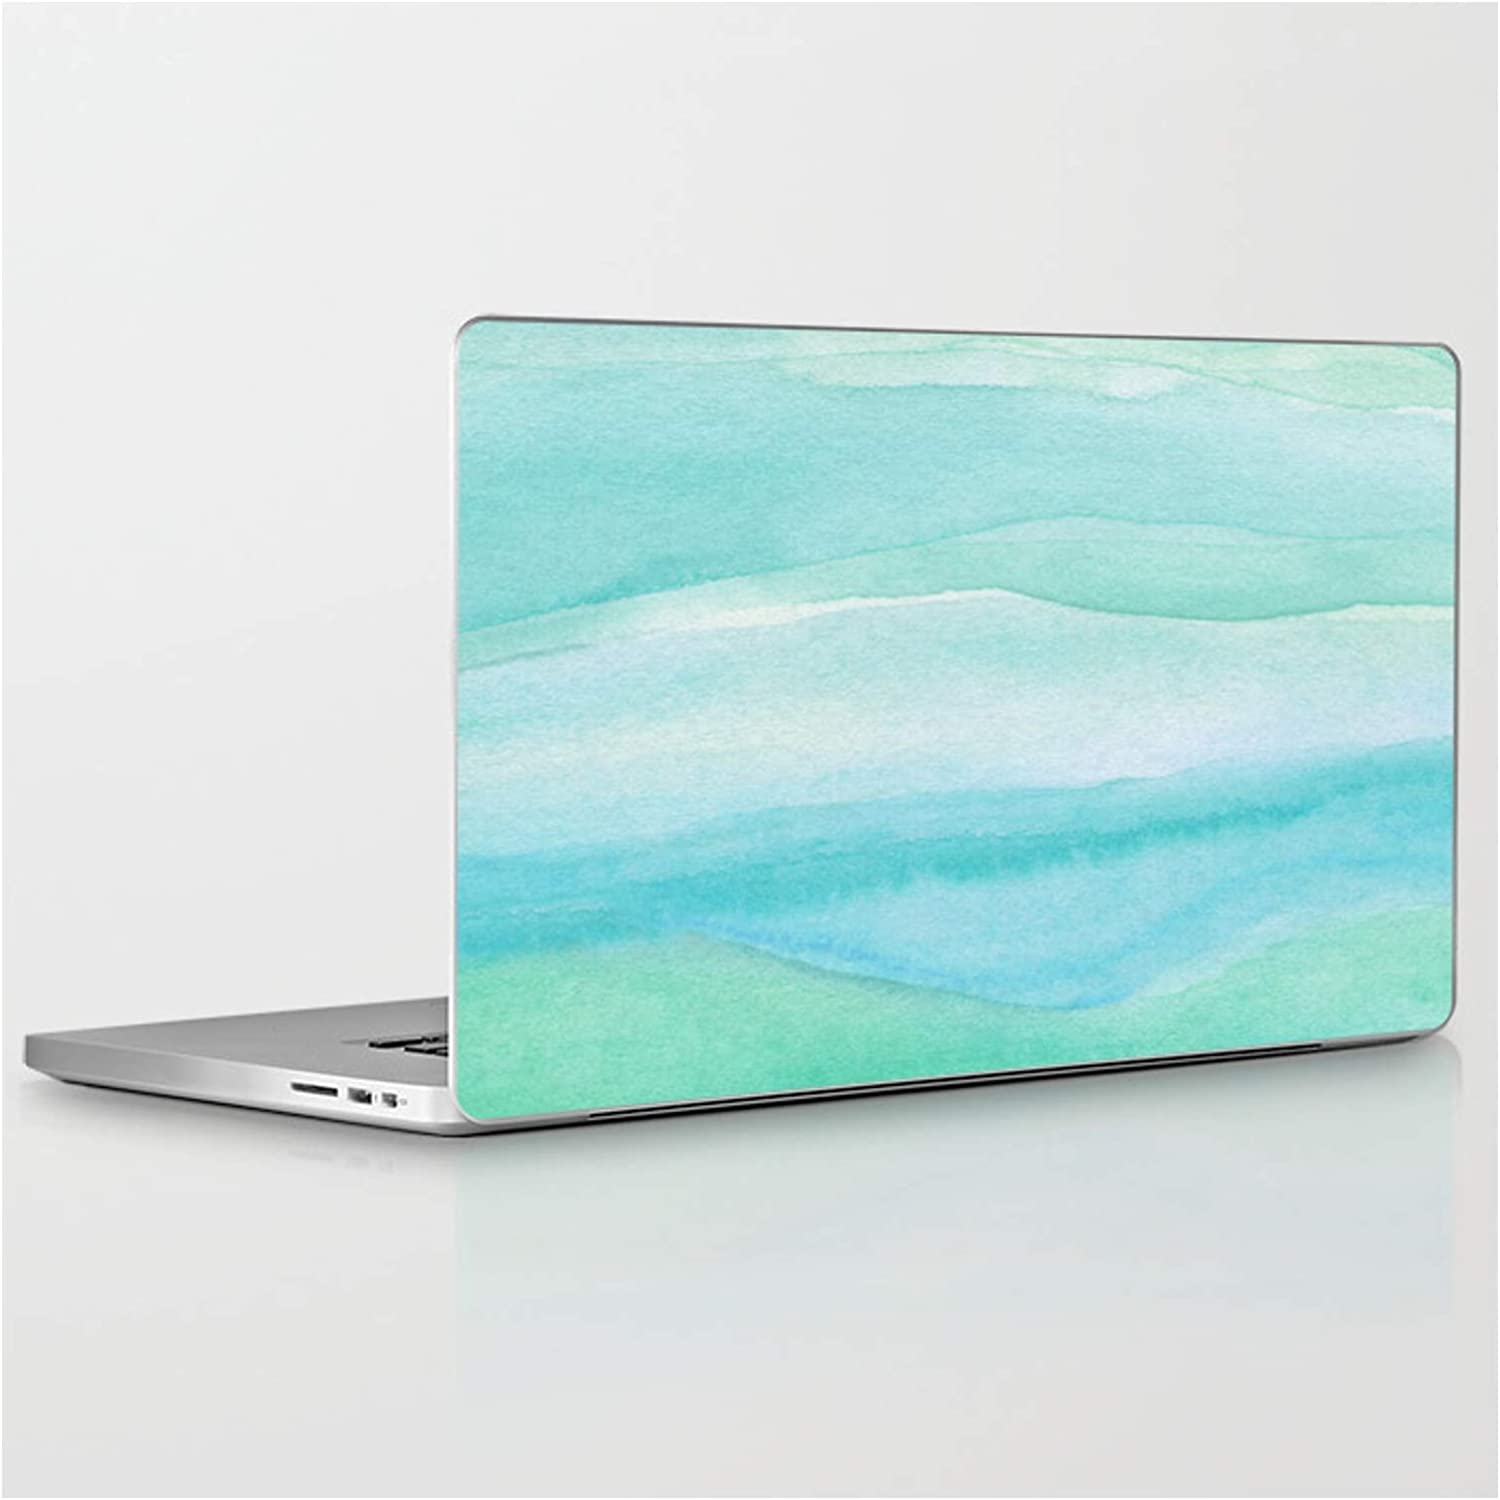 Ocean Layers - Blue Green Watercolor Whimsy by on Save money Sky Lapto Soldering